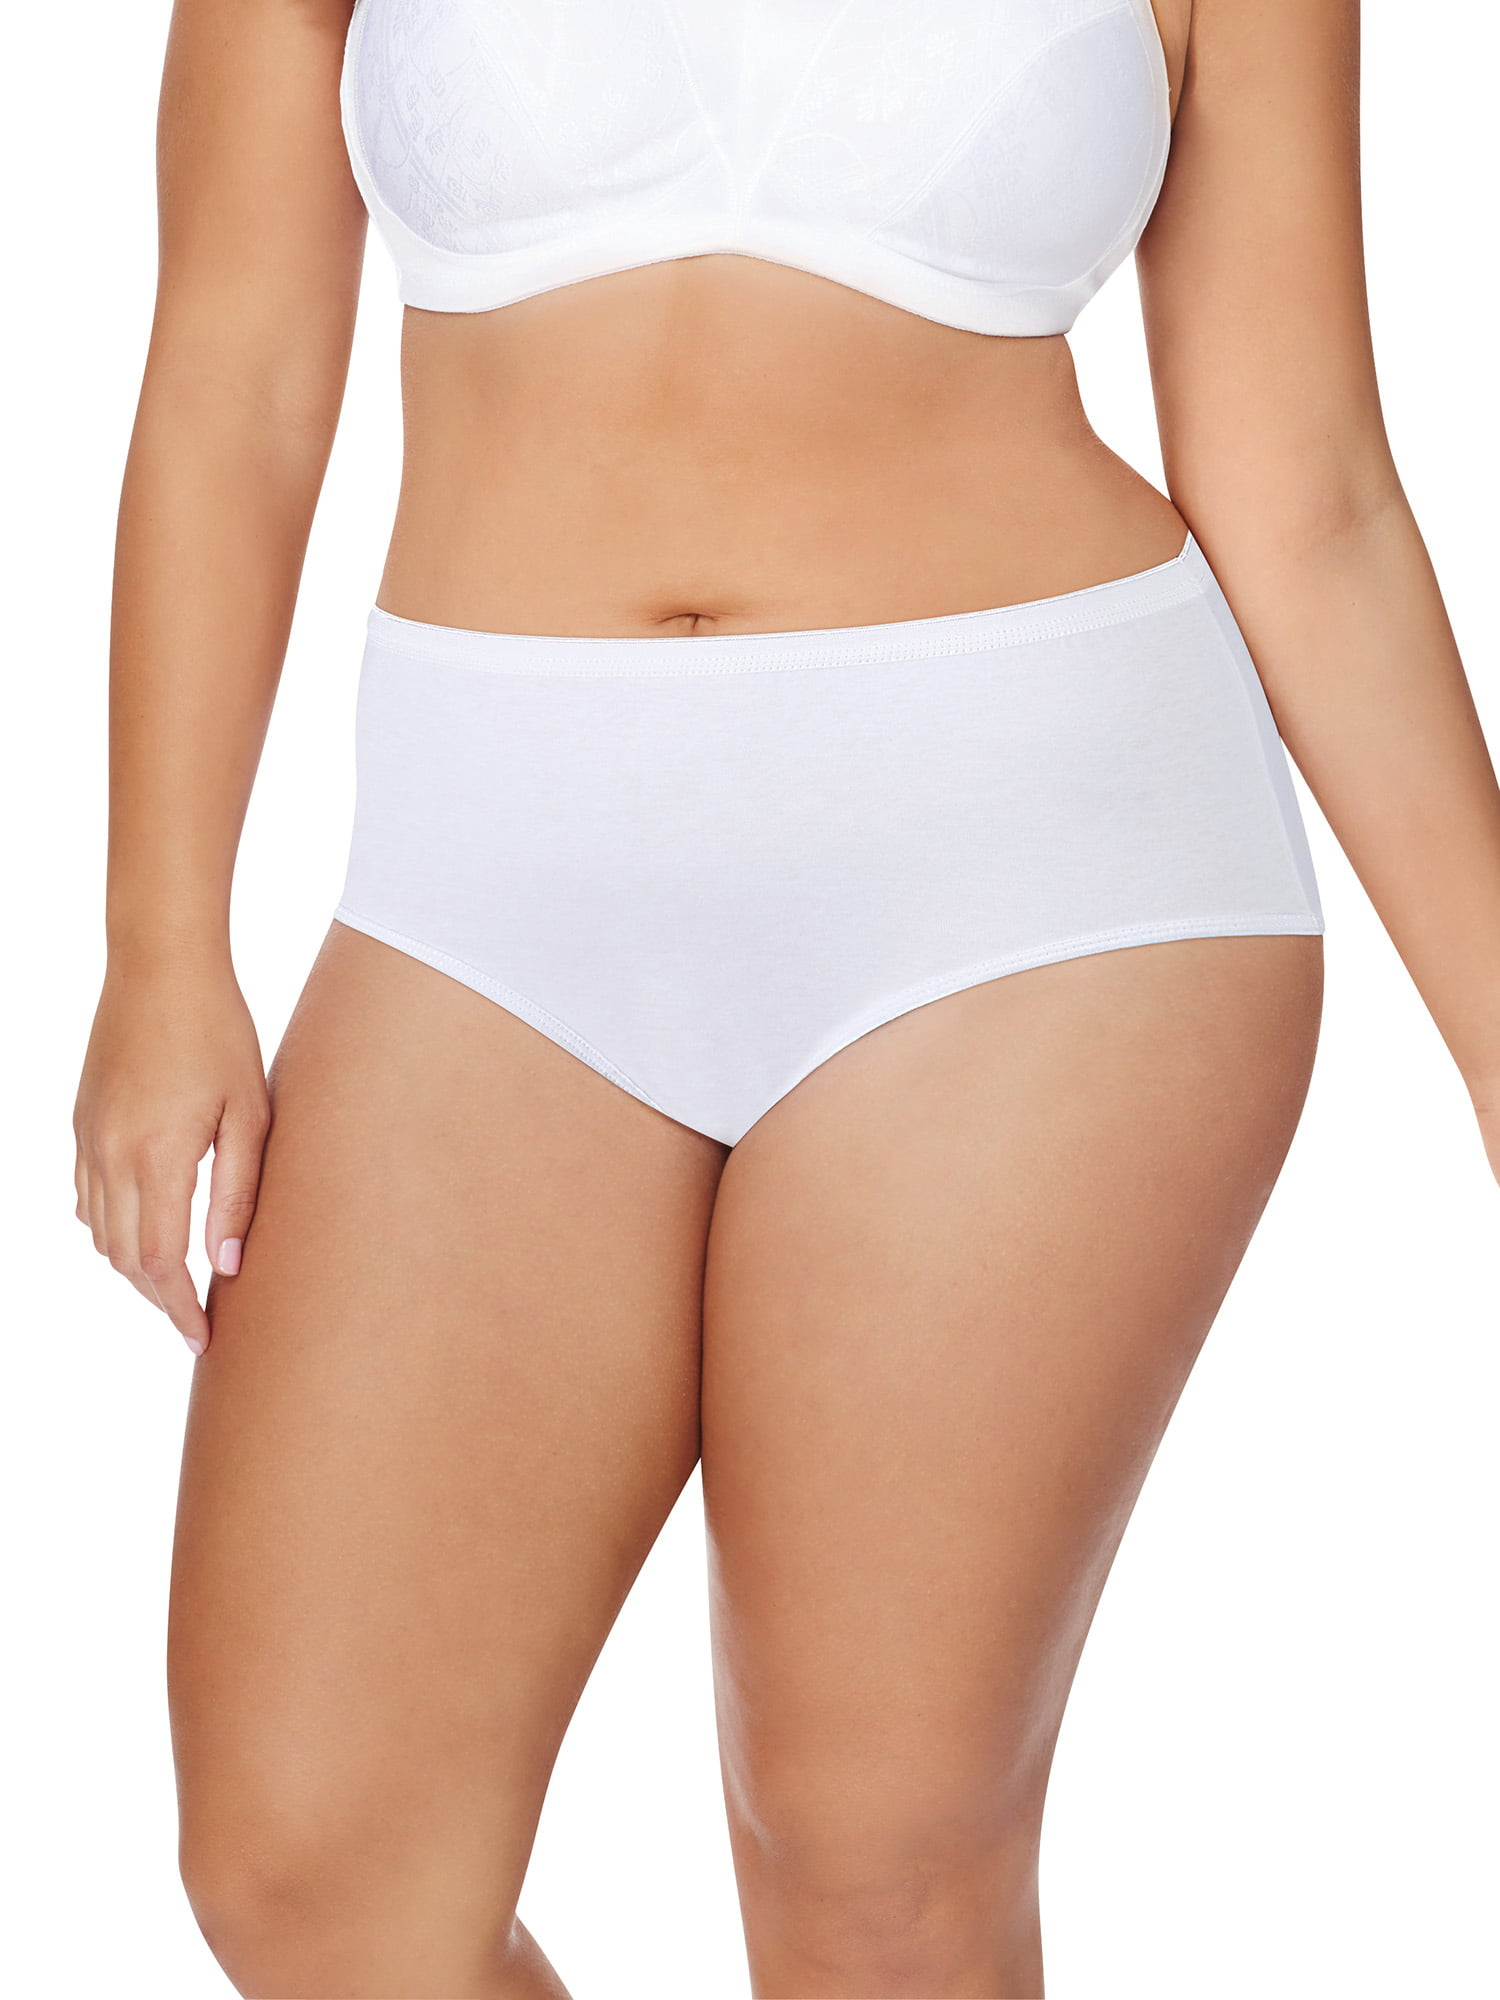 977f98ff29299 Just My Size - Women's 5 Pack Cotton Brief Assorted Color Panty -  Walmart.com